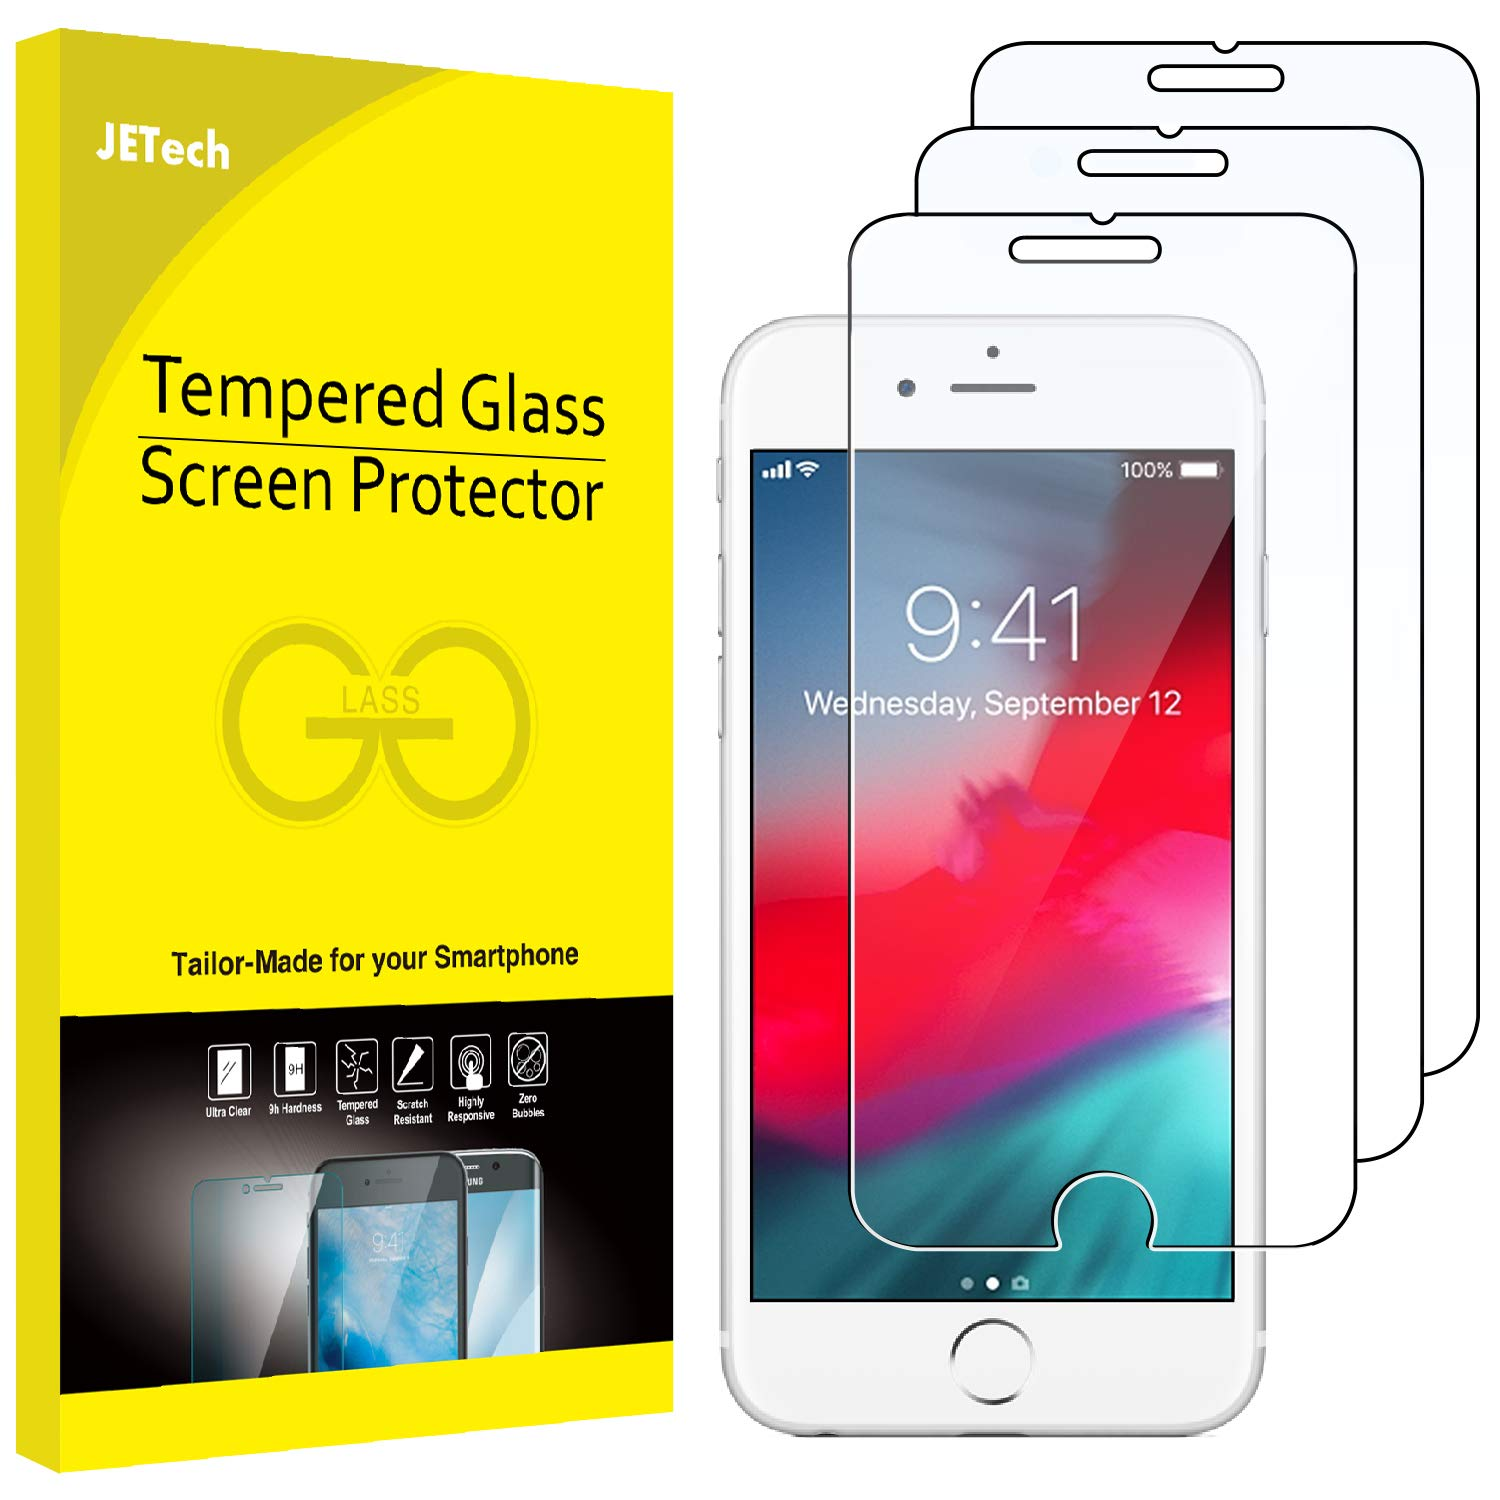 6cdf758bfed Amazon.com  JETech 3-Pack Screen Protector for Apple iPhone 8 Plus ...